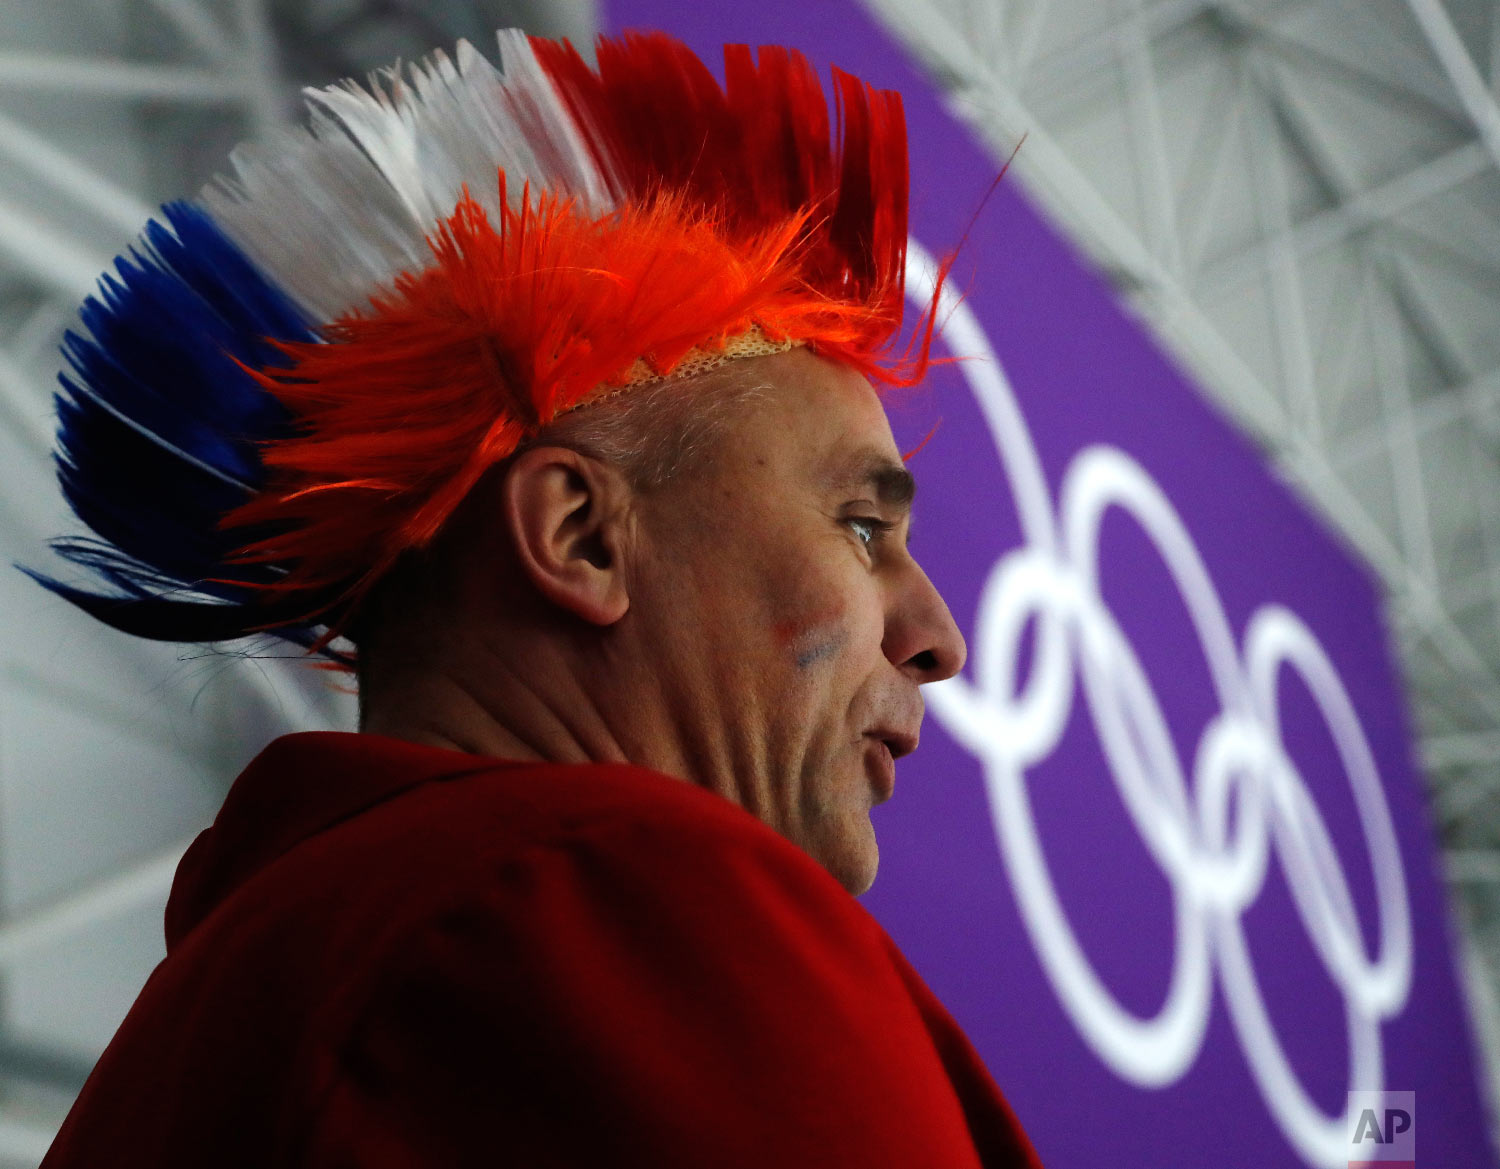 A fan of the Dutch speedsters wears a wig in the colors of the Dutch flag as he waits for the start of the women's 1500 meters speedskating race at the Gangneung Oval at the 2018 Winter Olympics in Gangneung, South Korea, Monday, Feb. 12, 2018. (AP Photo/Petr David Josek)